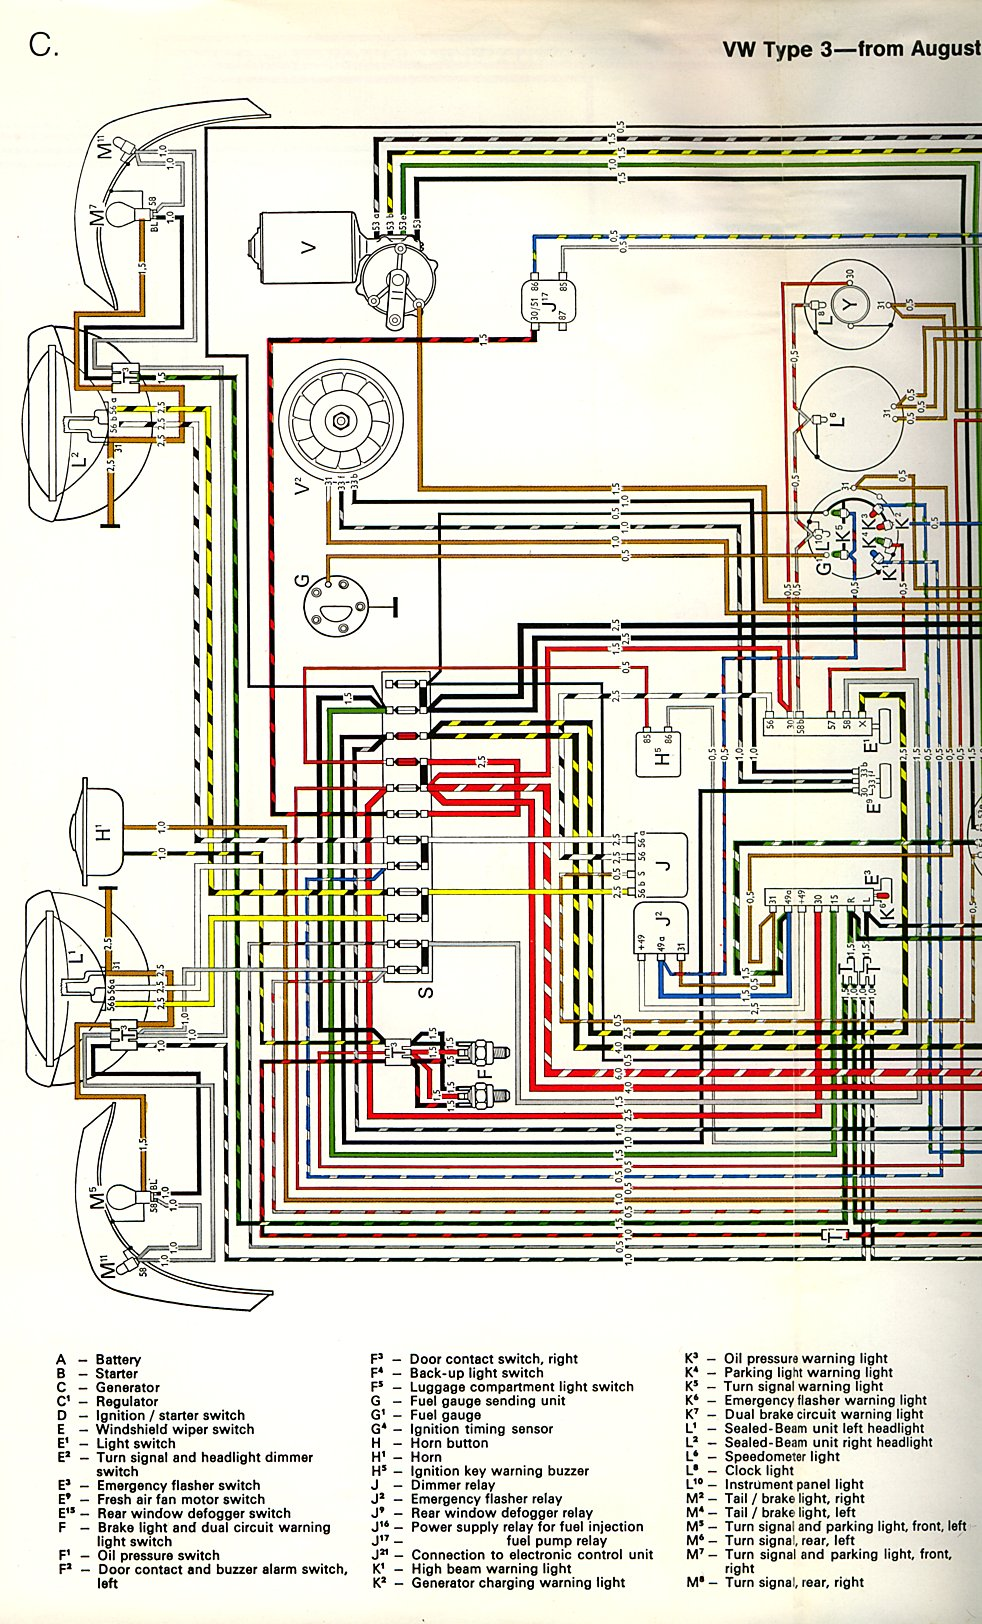 type3_72a thesamba com type 3 wiring diagrams 1968 vw bug headlight wiring diagram at metegol.co